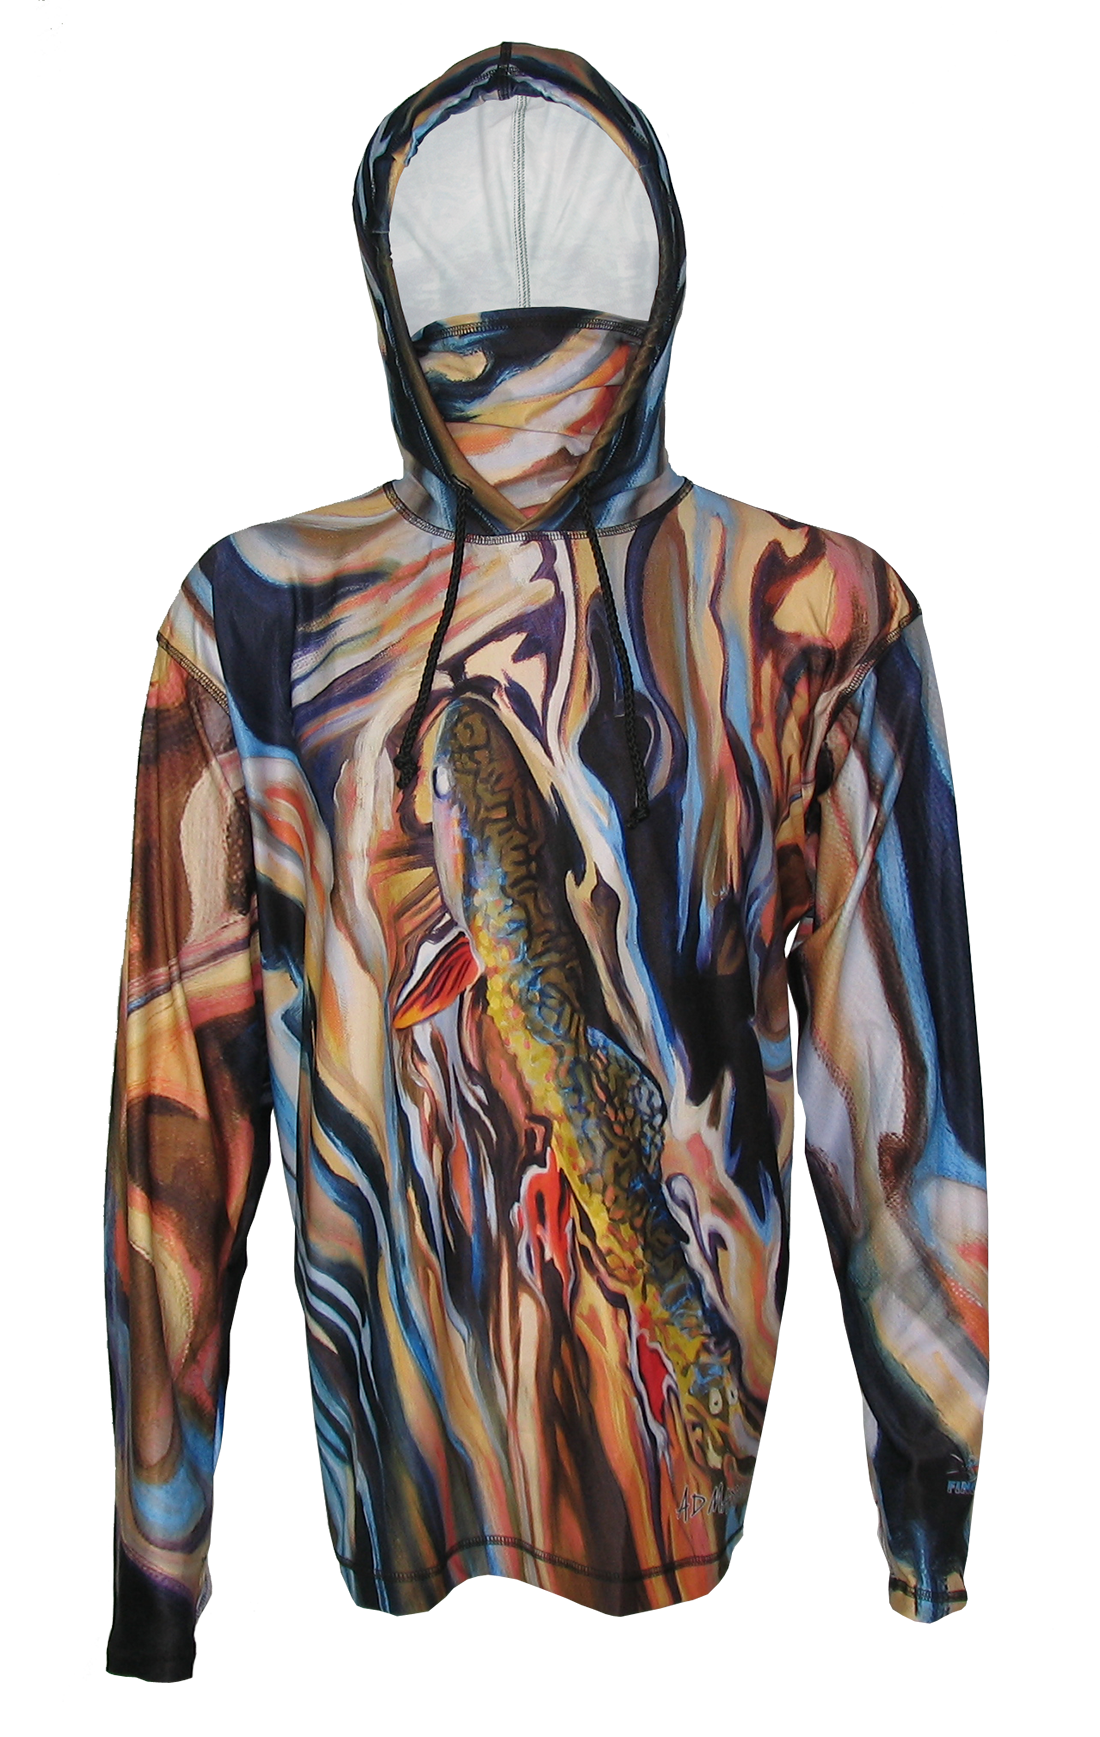 AD Maddox Upper Gros Venter Brook Trout Fly Fishing Apparel Hoodie will keep you protected on the river, trail, backpacking, hiking, mountain biking or keep you looking good out on the town